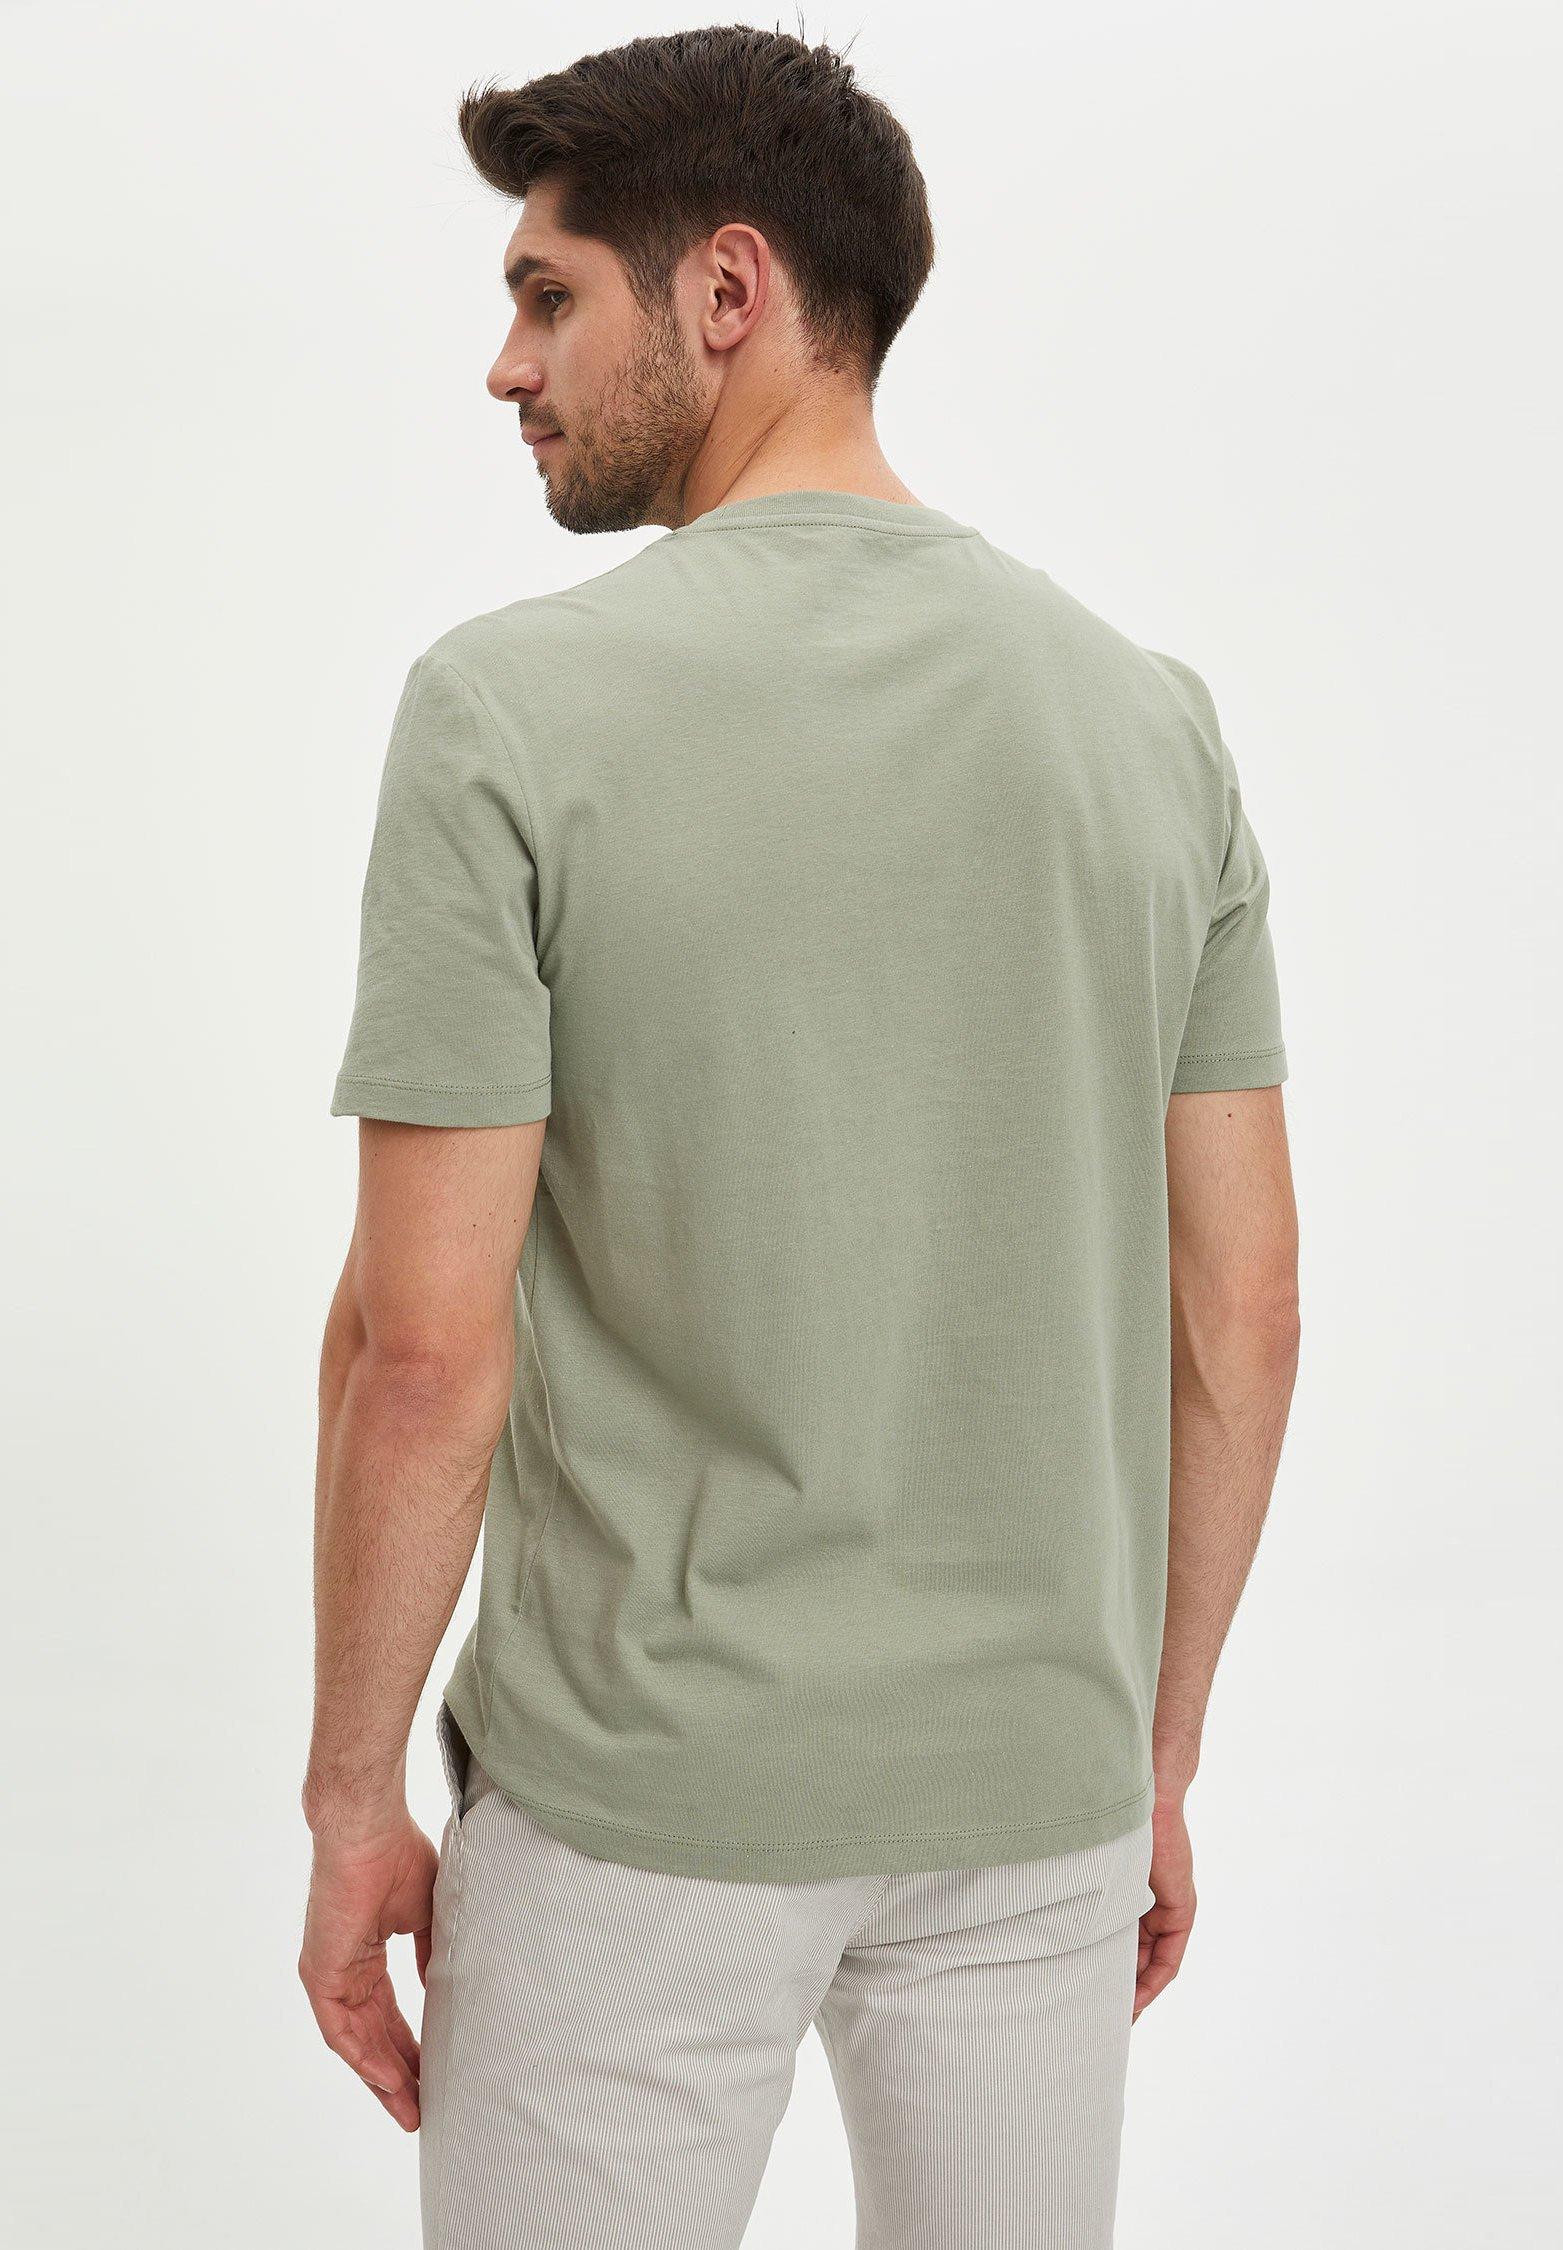 DeFacto Basic T-shirt - green 74g7Z